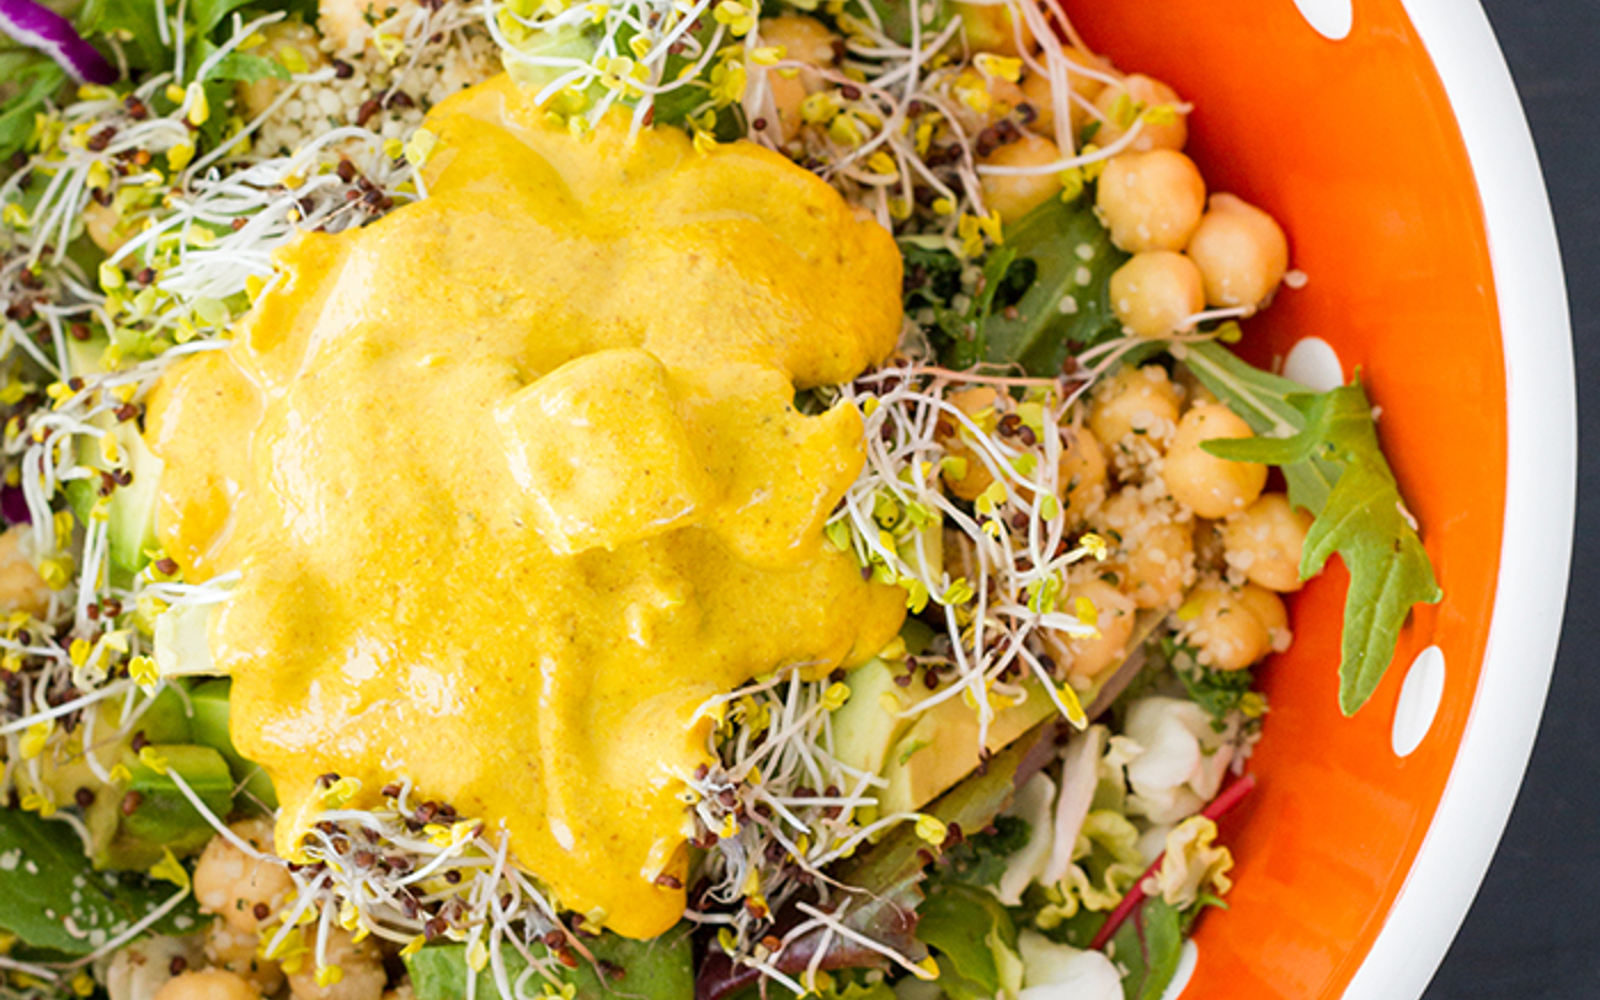 Vegan Almond Butter Turmeric Dressing over salad